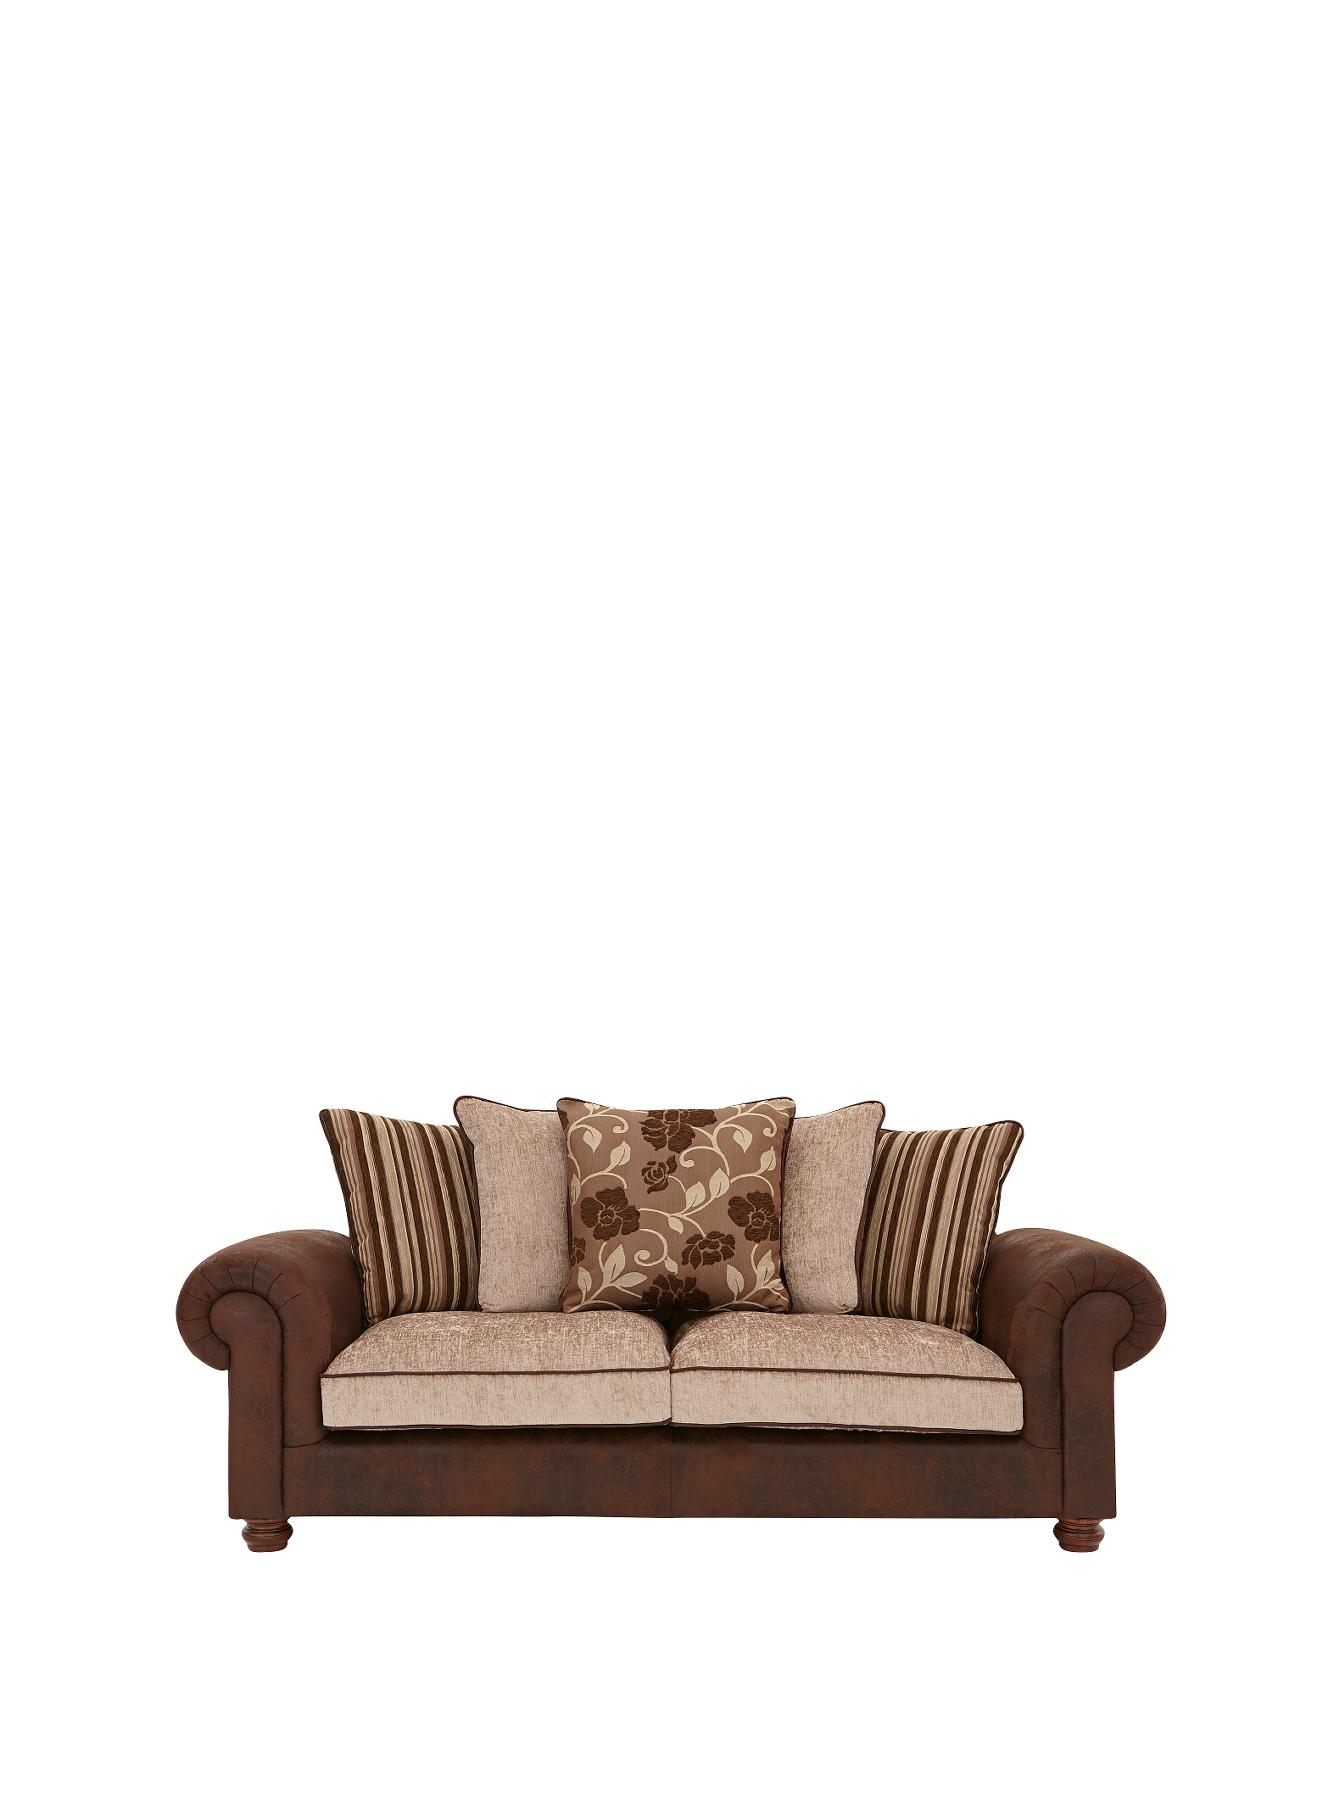 Astley 3-Seater Sofa, Chocolate,Black